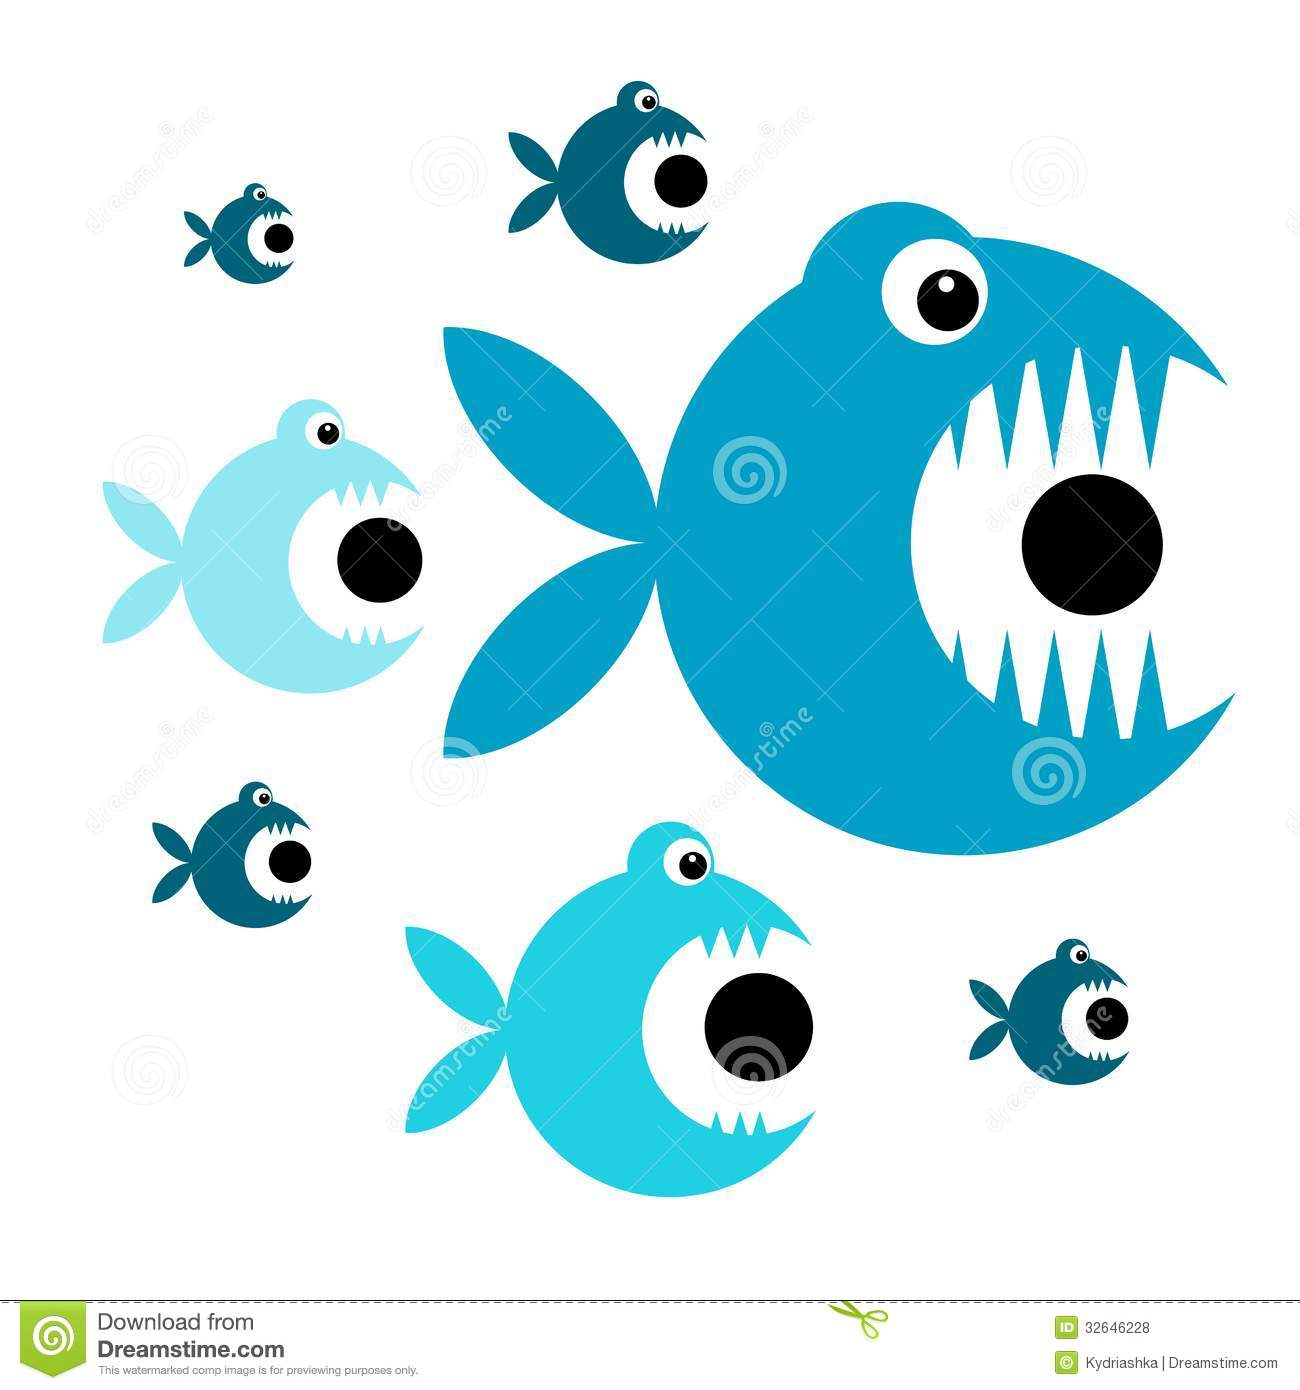 Funny Looking Cartoon Fish Images amp Pictures Becuo